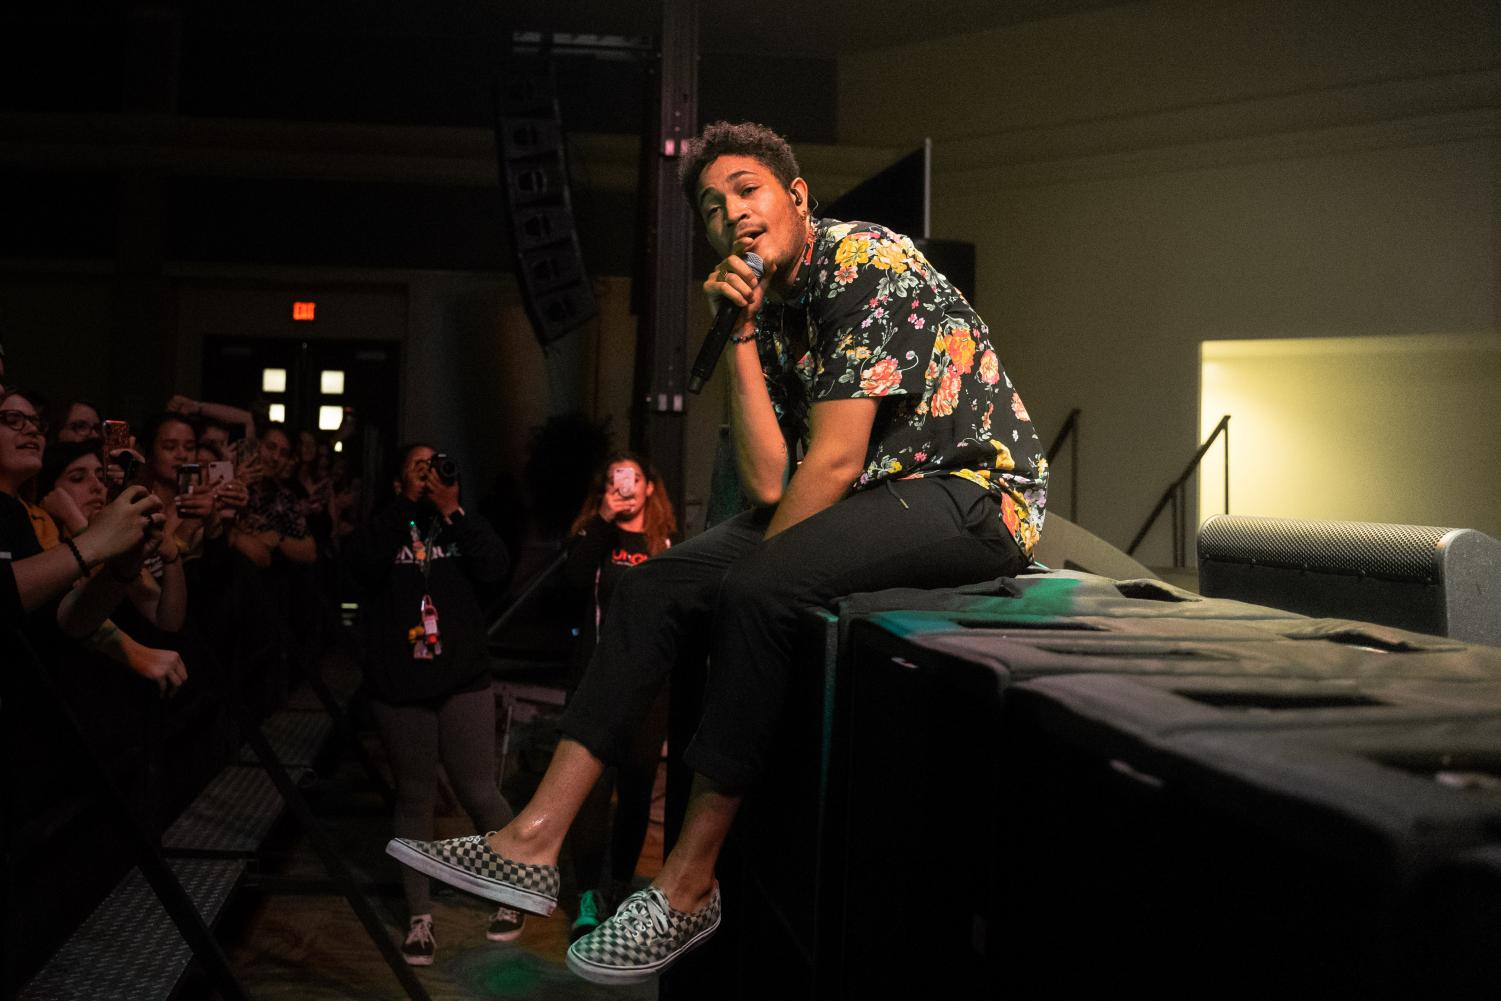 Bryce Vine performs in the University Union Ballroom on Thursday, April 18, 2019. Vine ended his performance by announcing to the audience that his upcoming album